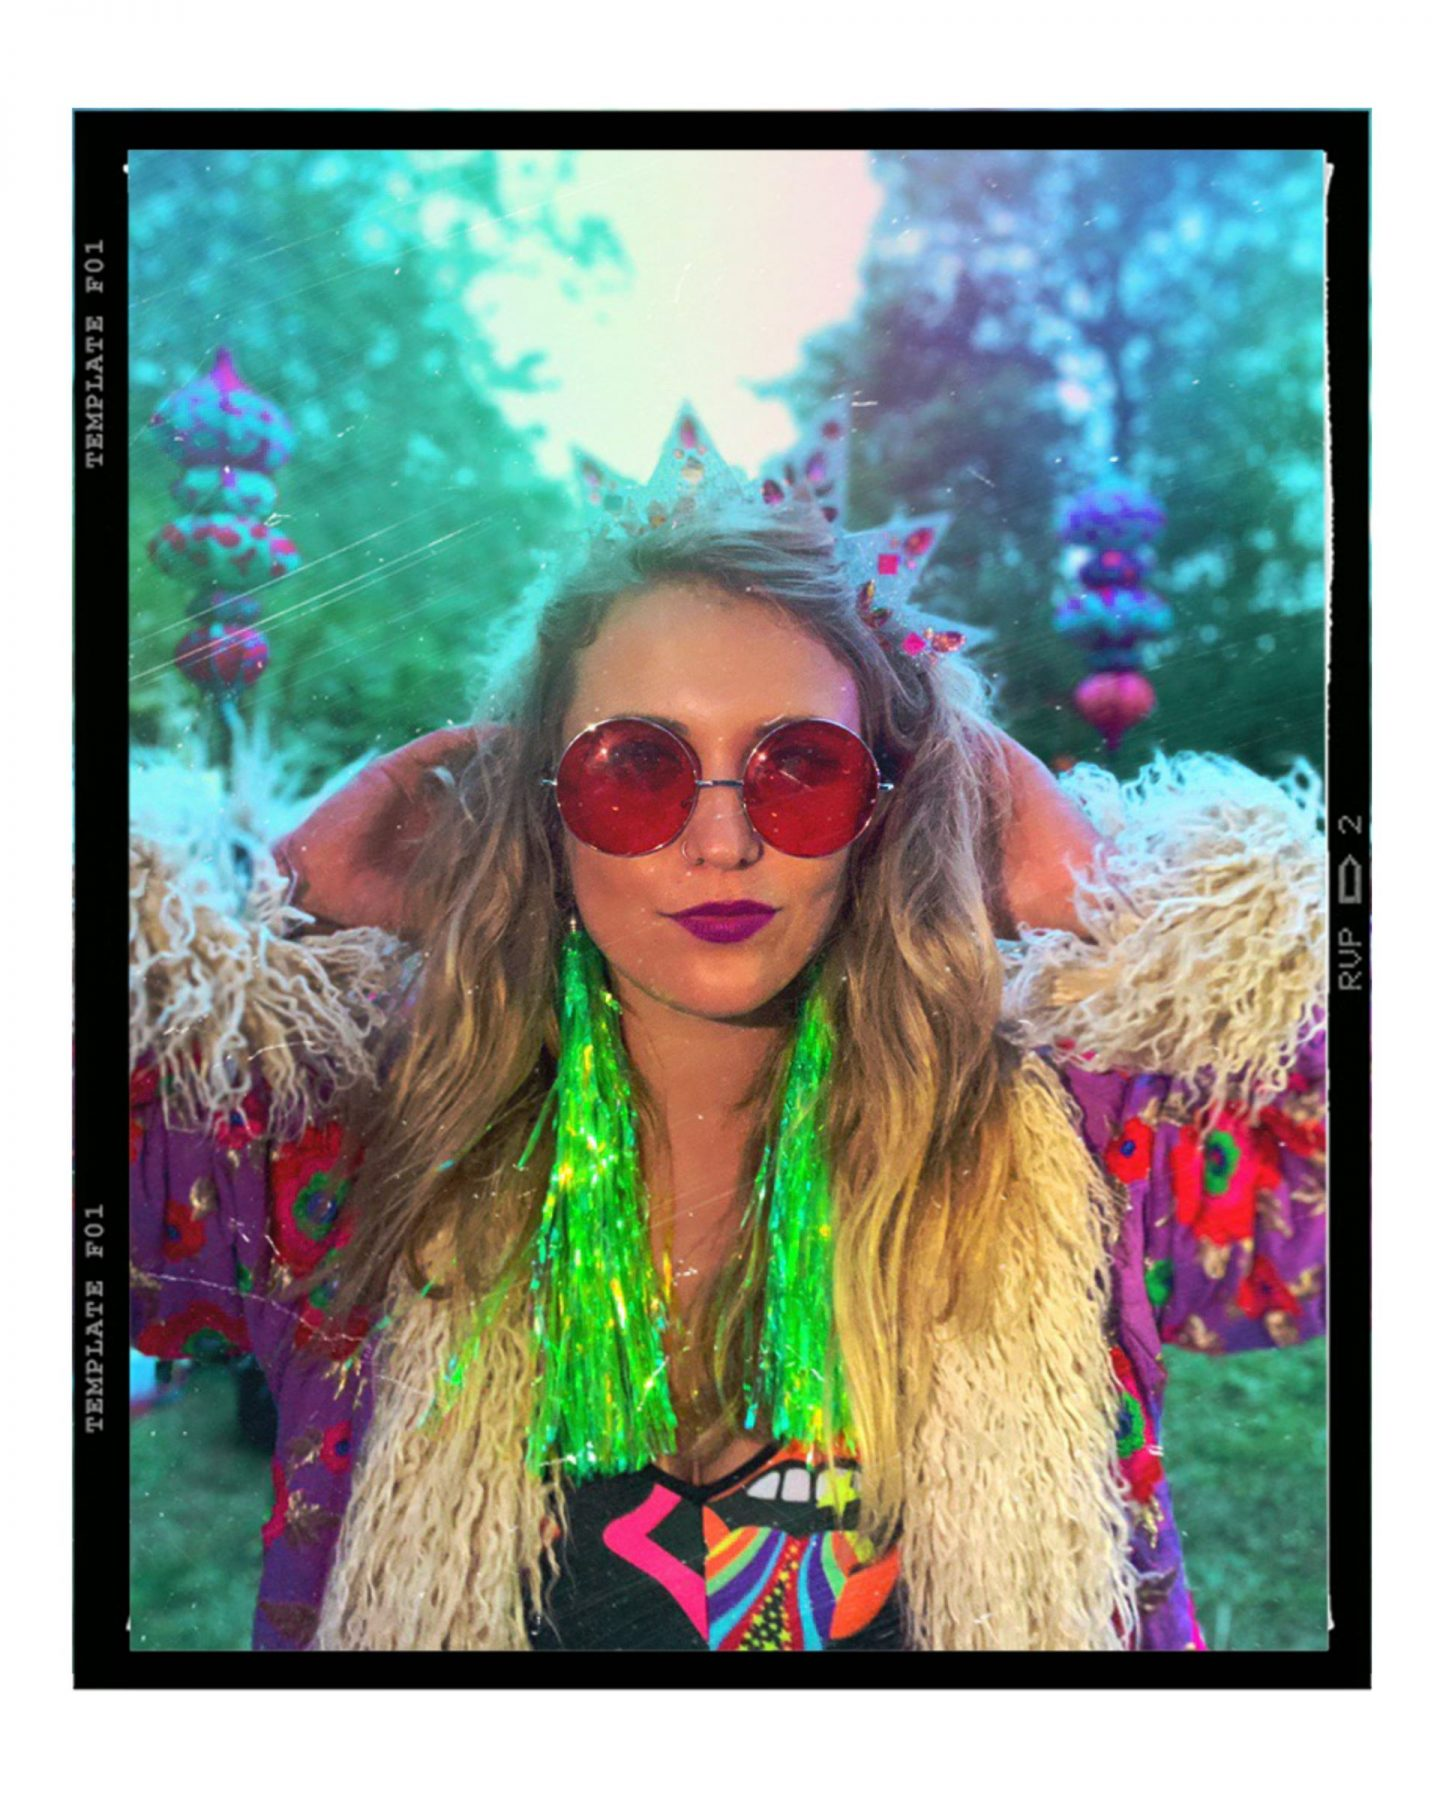 Festival accessories outfit inspiration - Bottle Blonde Studio tinsel earrings, Headspace headdresses crown